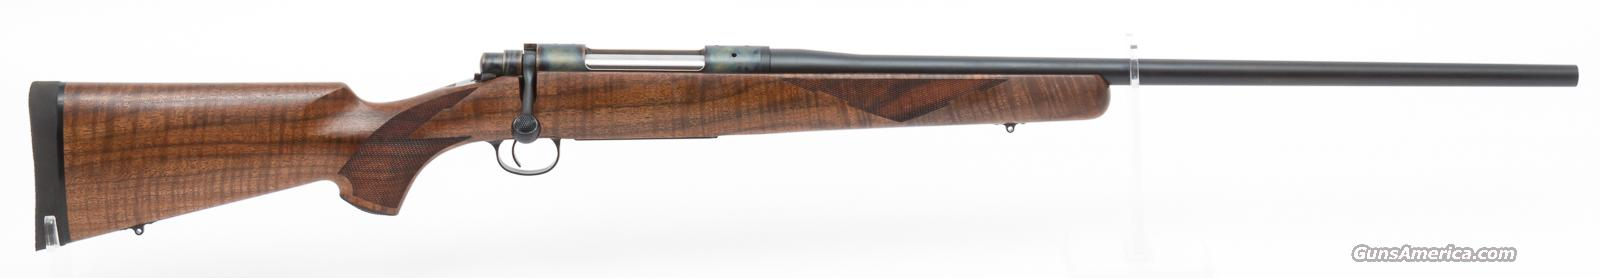 "Cooper Arms Model 52 Classic .280 REM 24"" AAA+  Guns > Rifles > Cooper Arms Rifles"